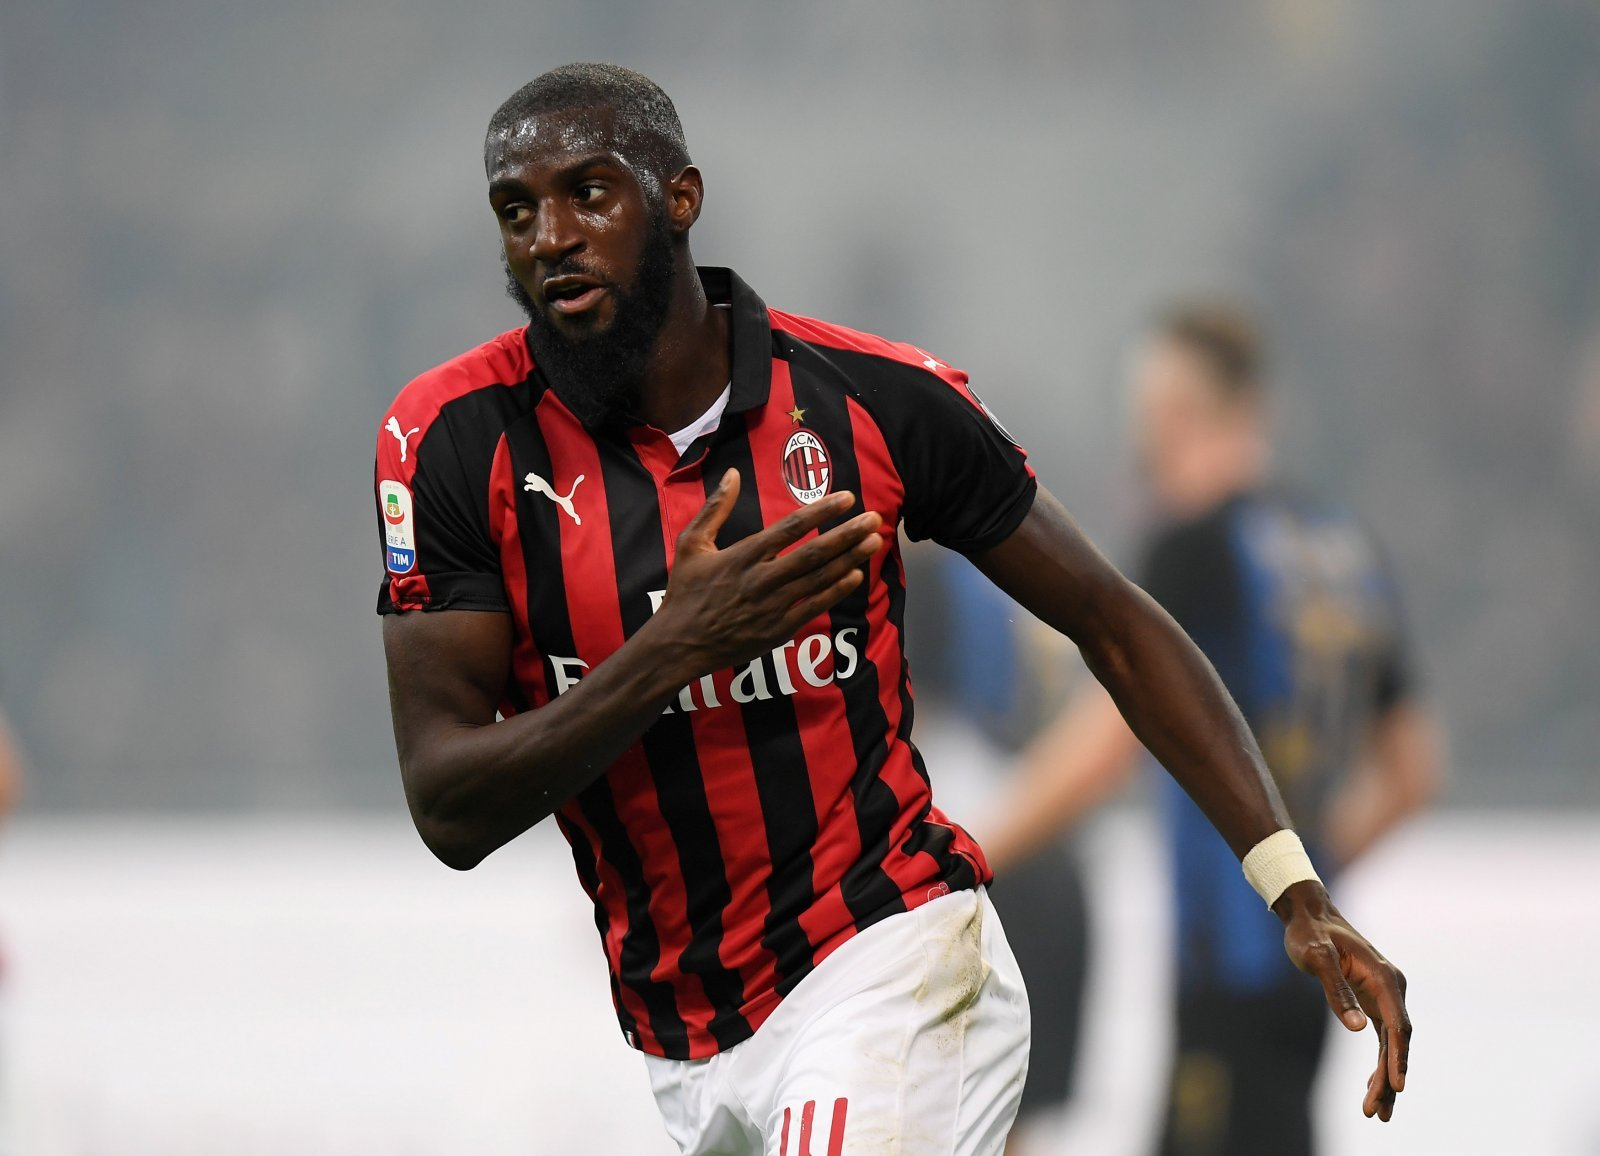 Arsenal: Linked with surprise move for Tiemoue Bakayoko